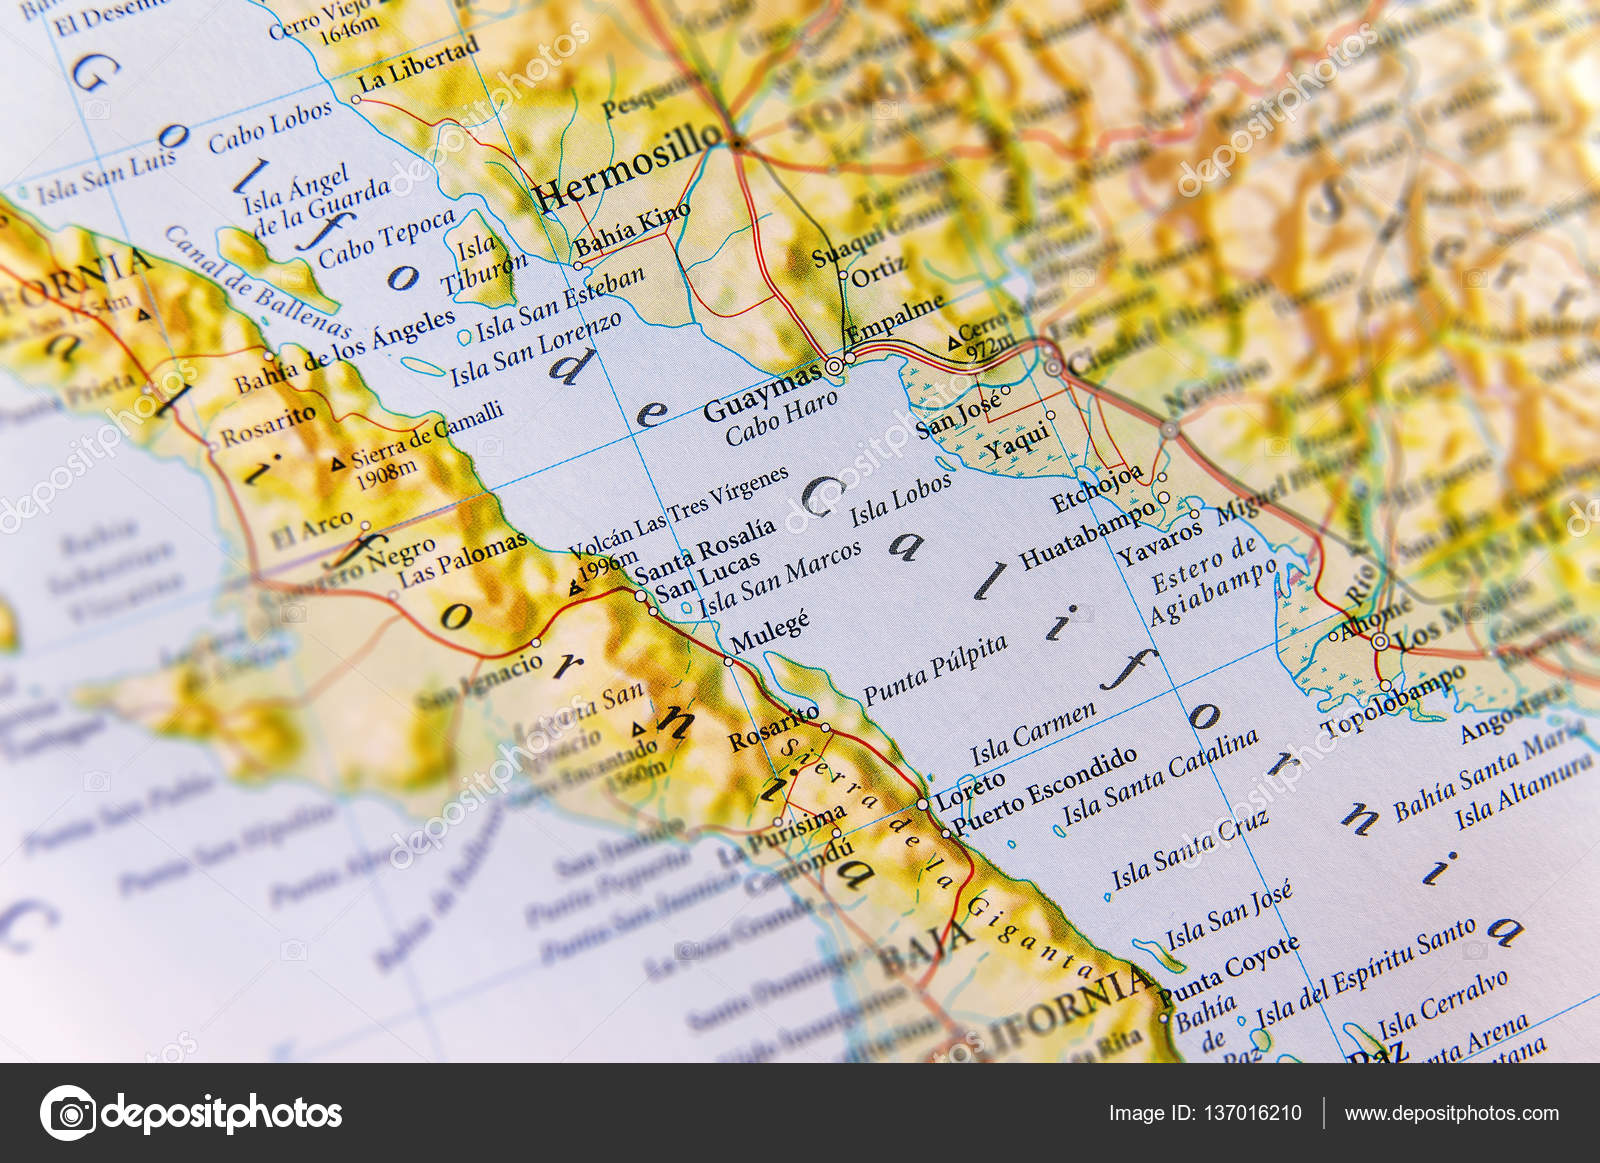 Geographic map of Golfo de California close — Stock Photo ... on koppen climate map california, entertainment map of california, show map of california, travel map of california, demographic map of california, gis map of california, transportation map of california, education map of california, large map of california, whole map of california, geopolitical map of california, draw a map of california, physical characteristics of california, the map of california, topographic map of california, artistic map of california, military map of california, counties of california, geologic map of california, racial map of california,